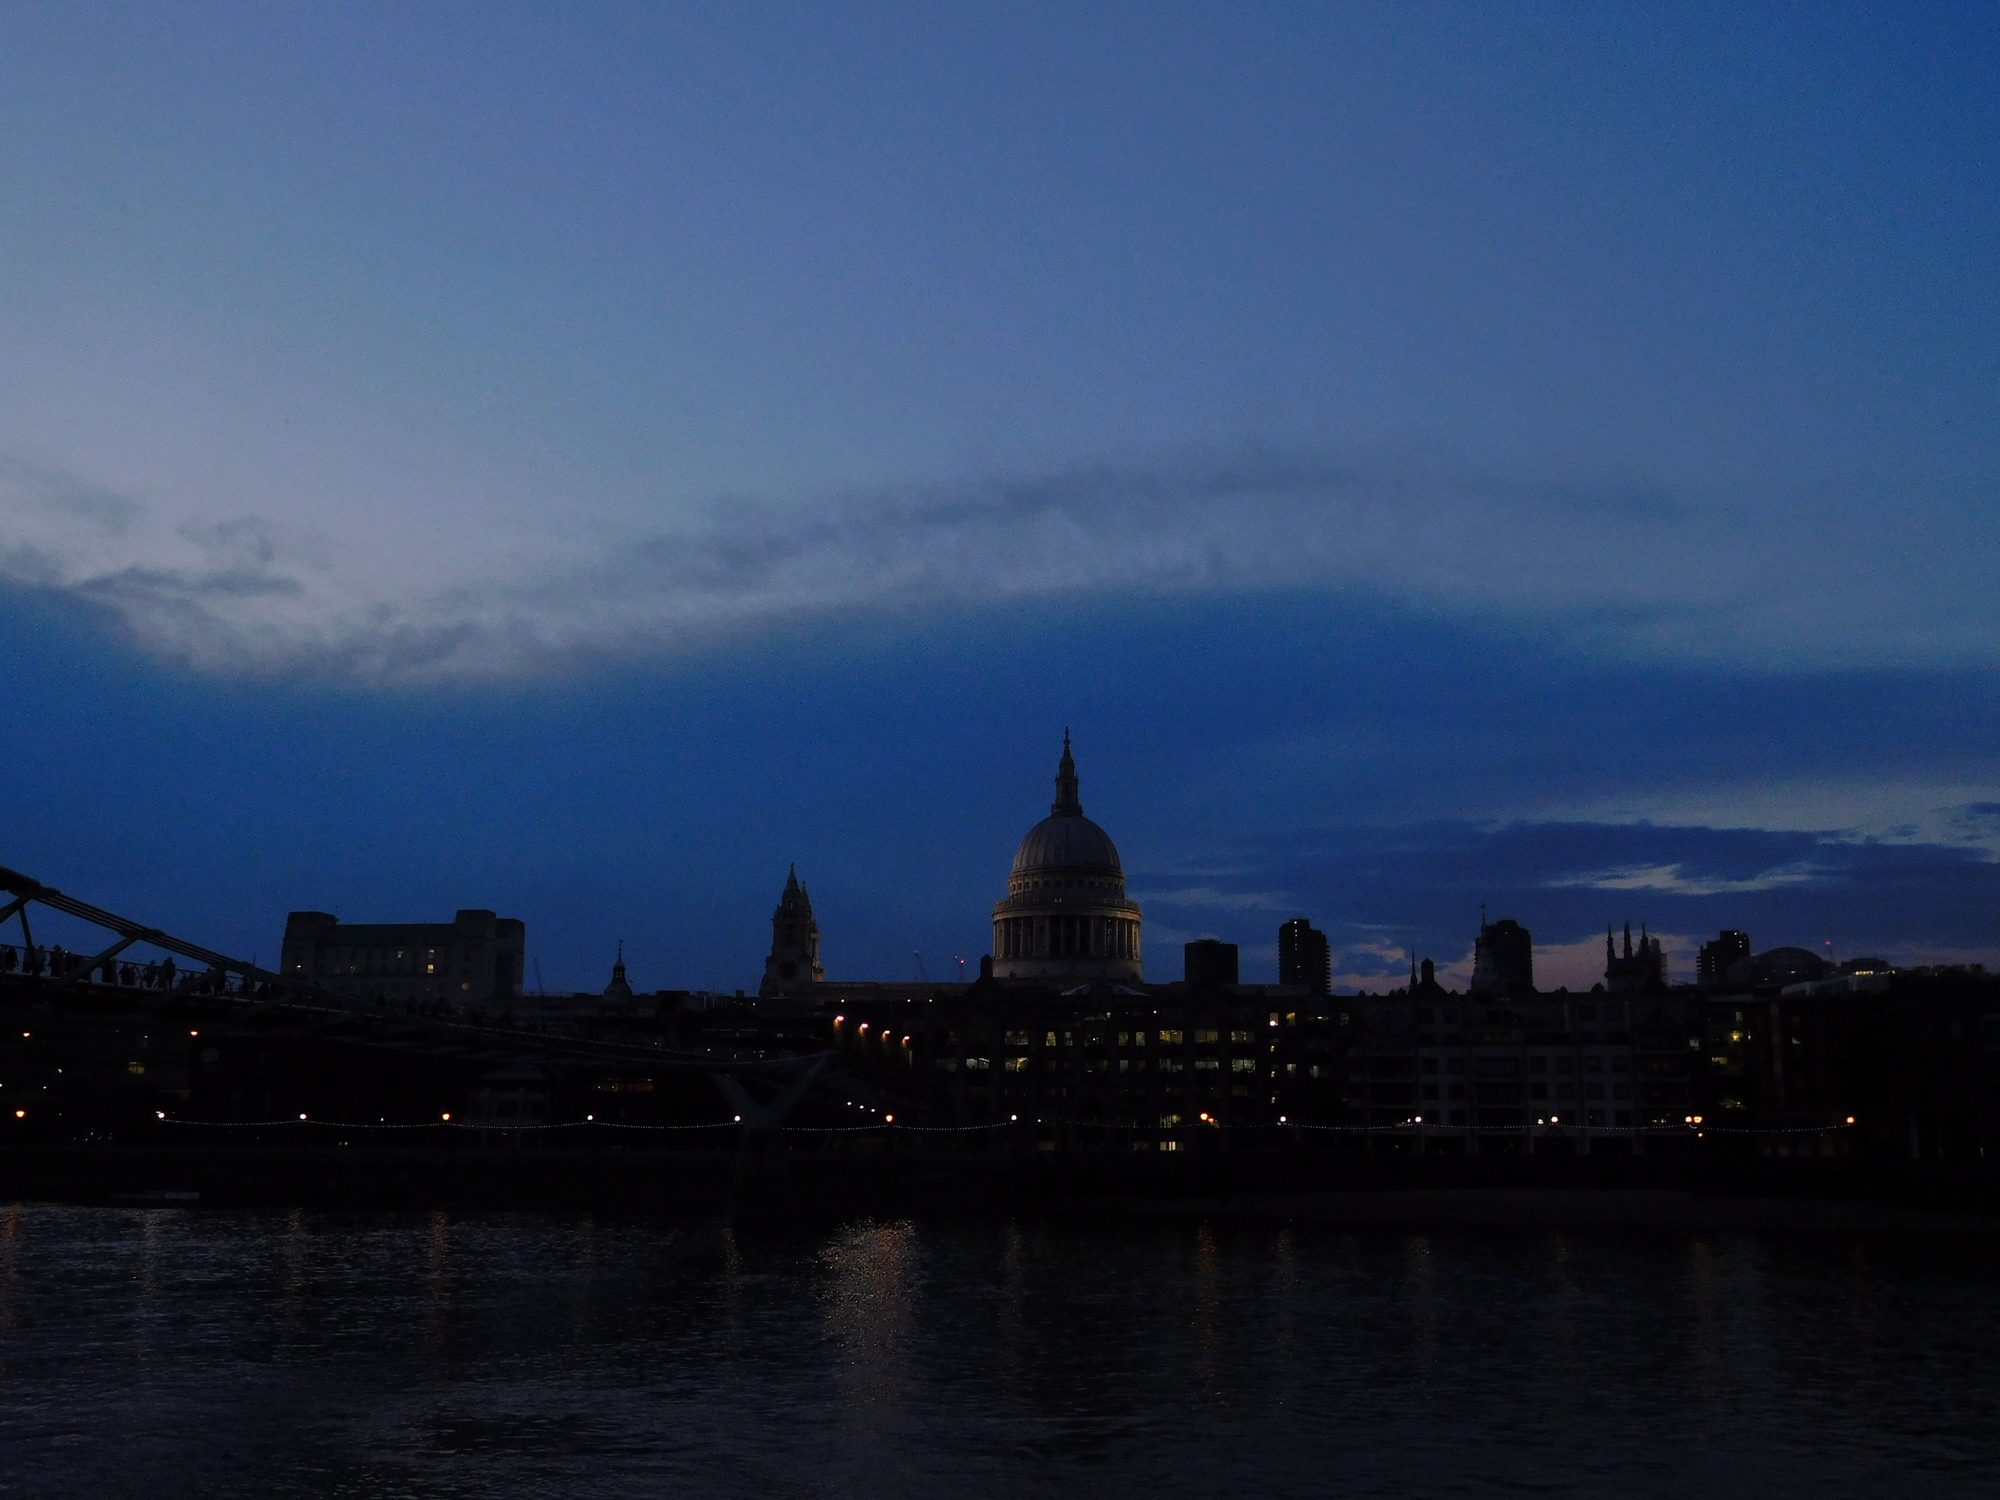 Die St. Pauls Cathedral am Abend in London